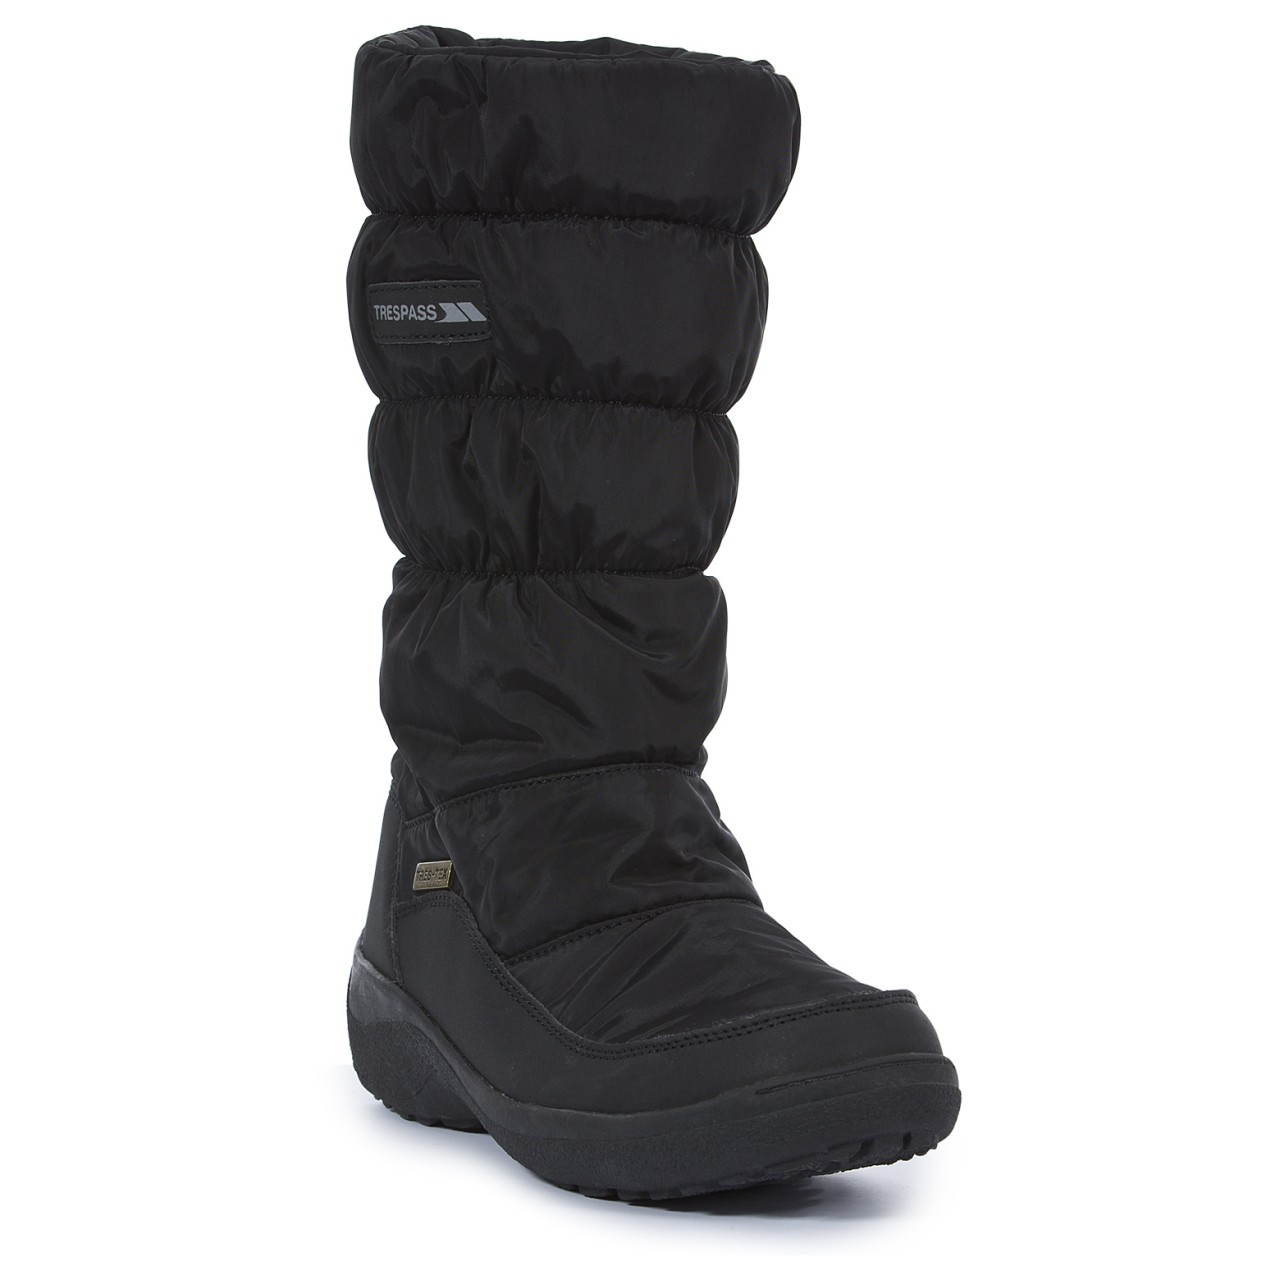 Womens Black Snow Boots BIe9L1cK